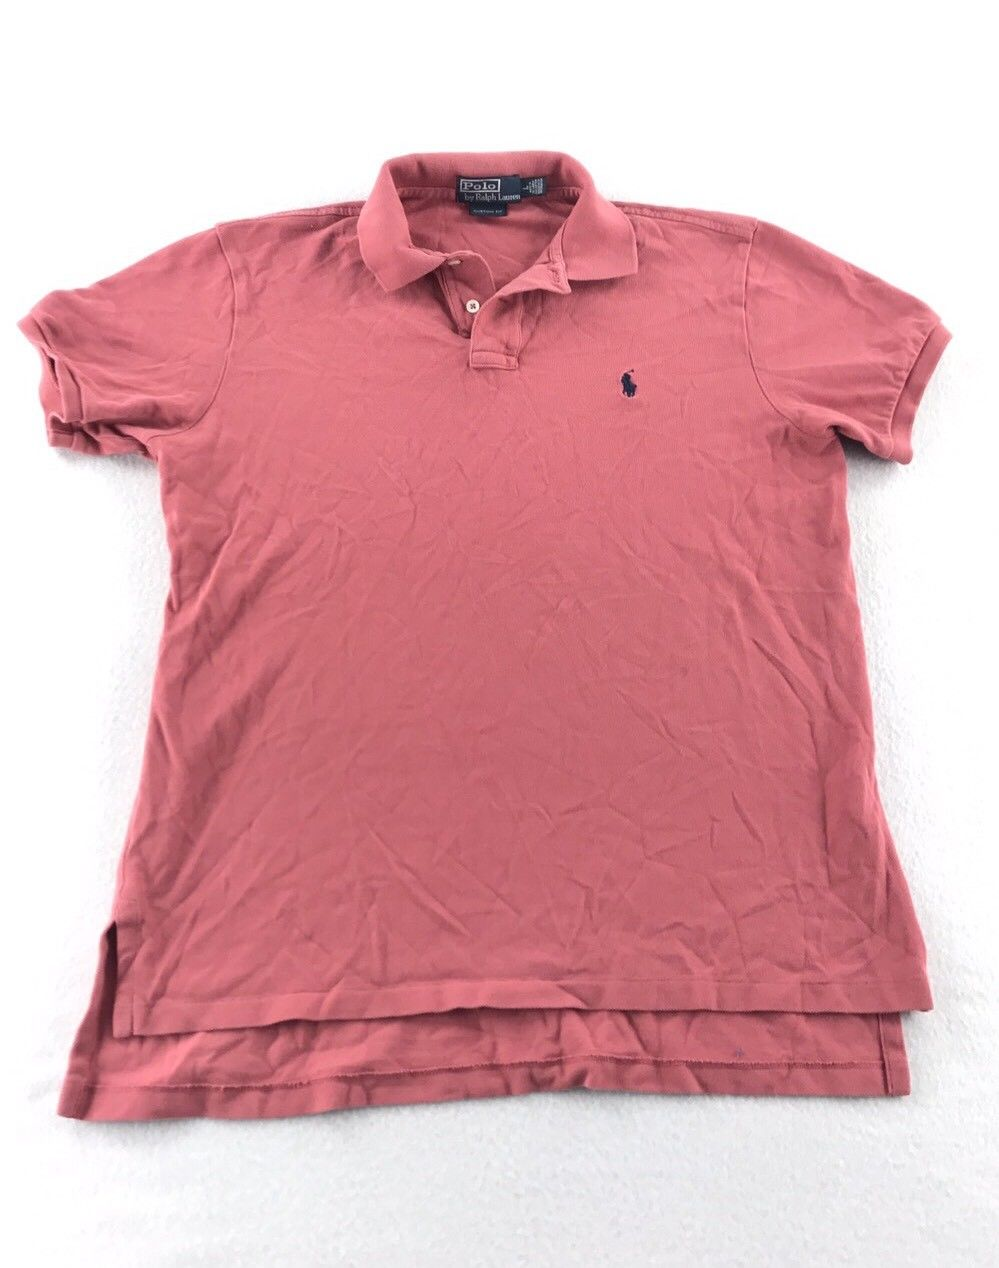 b2c357e020b Pink Polo Shirts Mens - BCD Tofu House